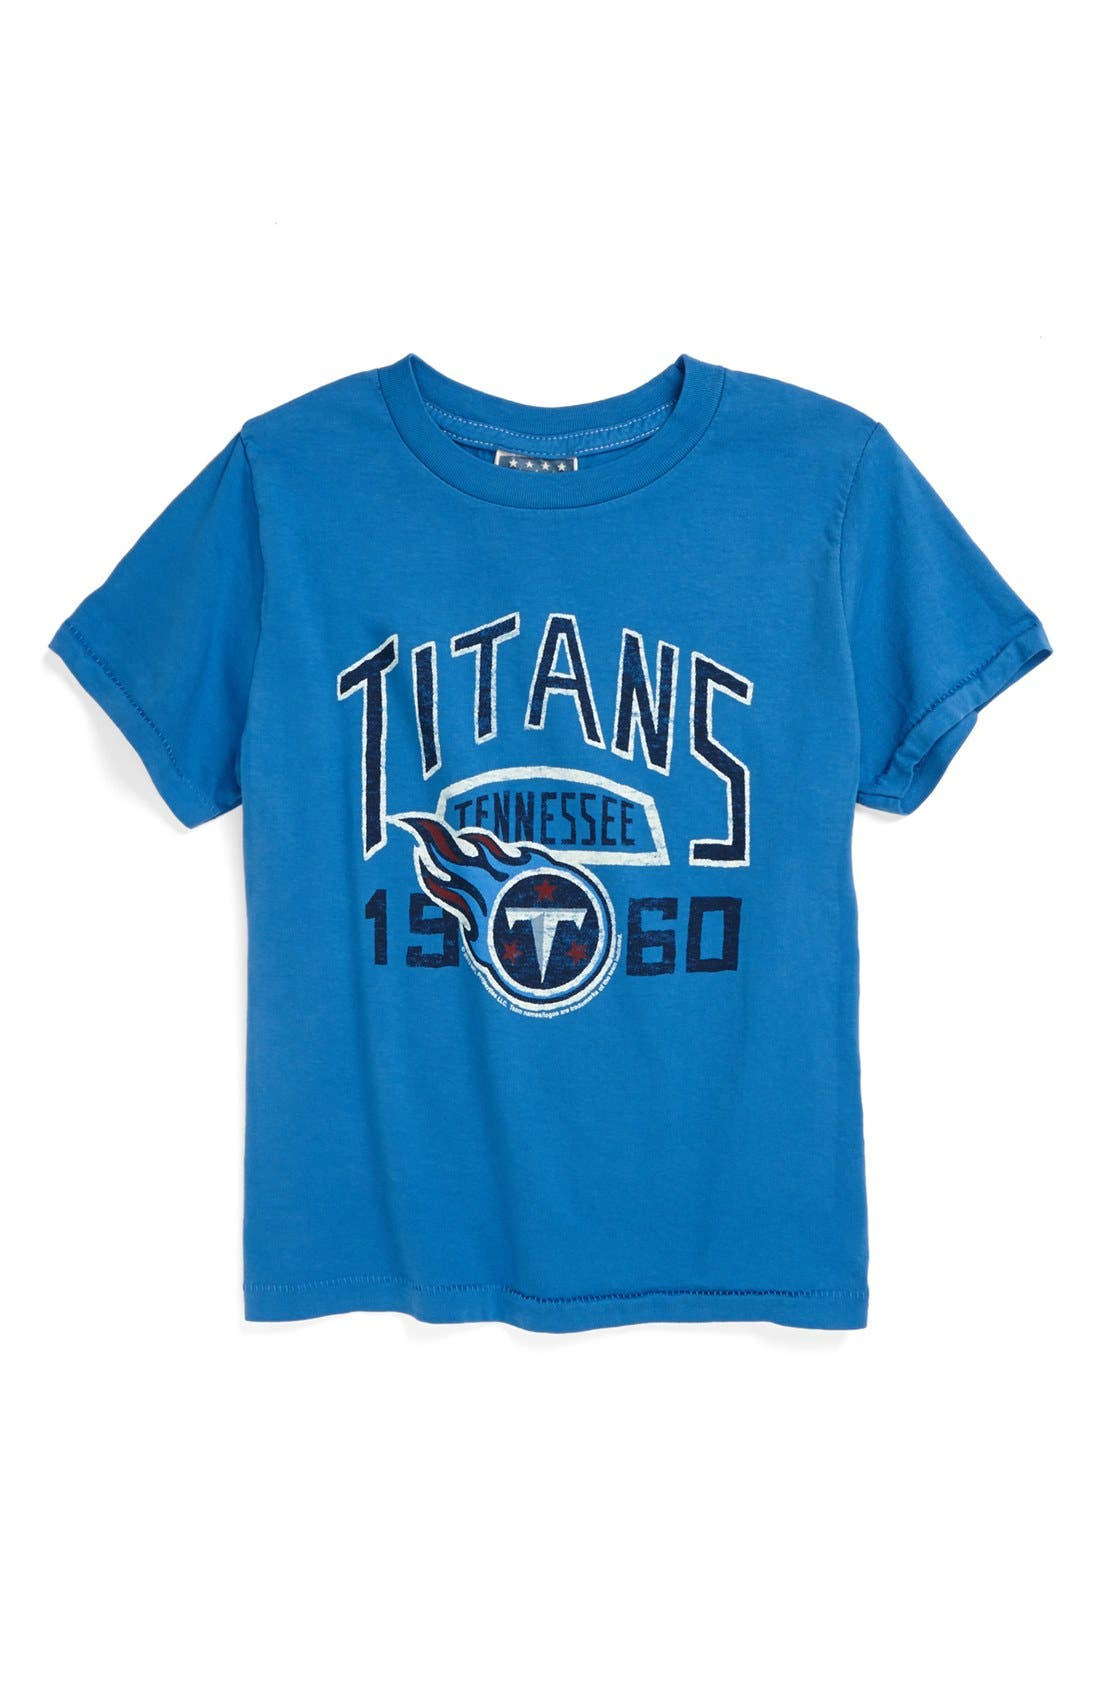 Main Image - Junk Food 'Tennessee Titans' T-Shirt (Toddler Boys)